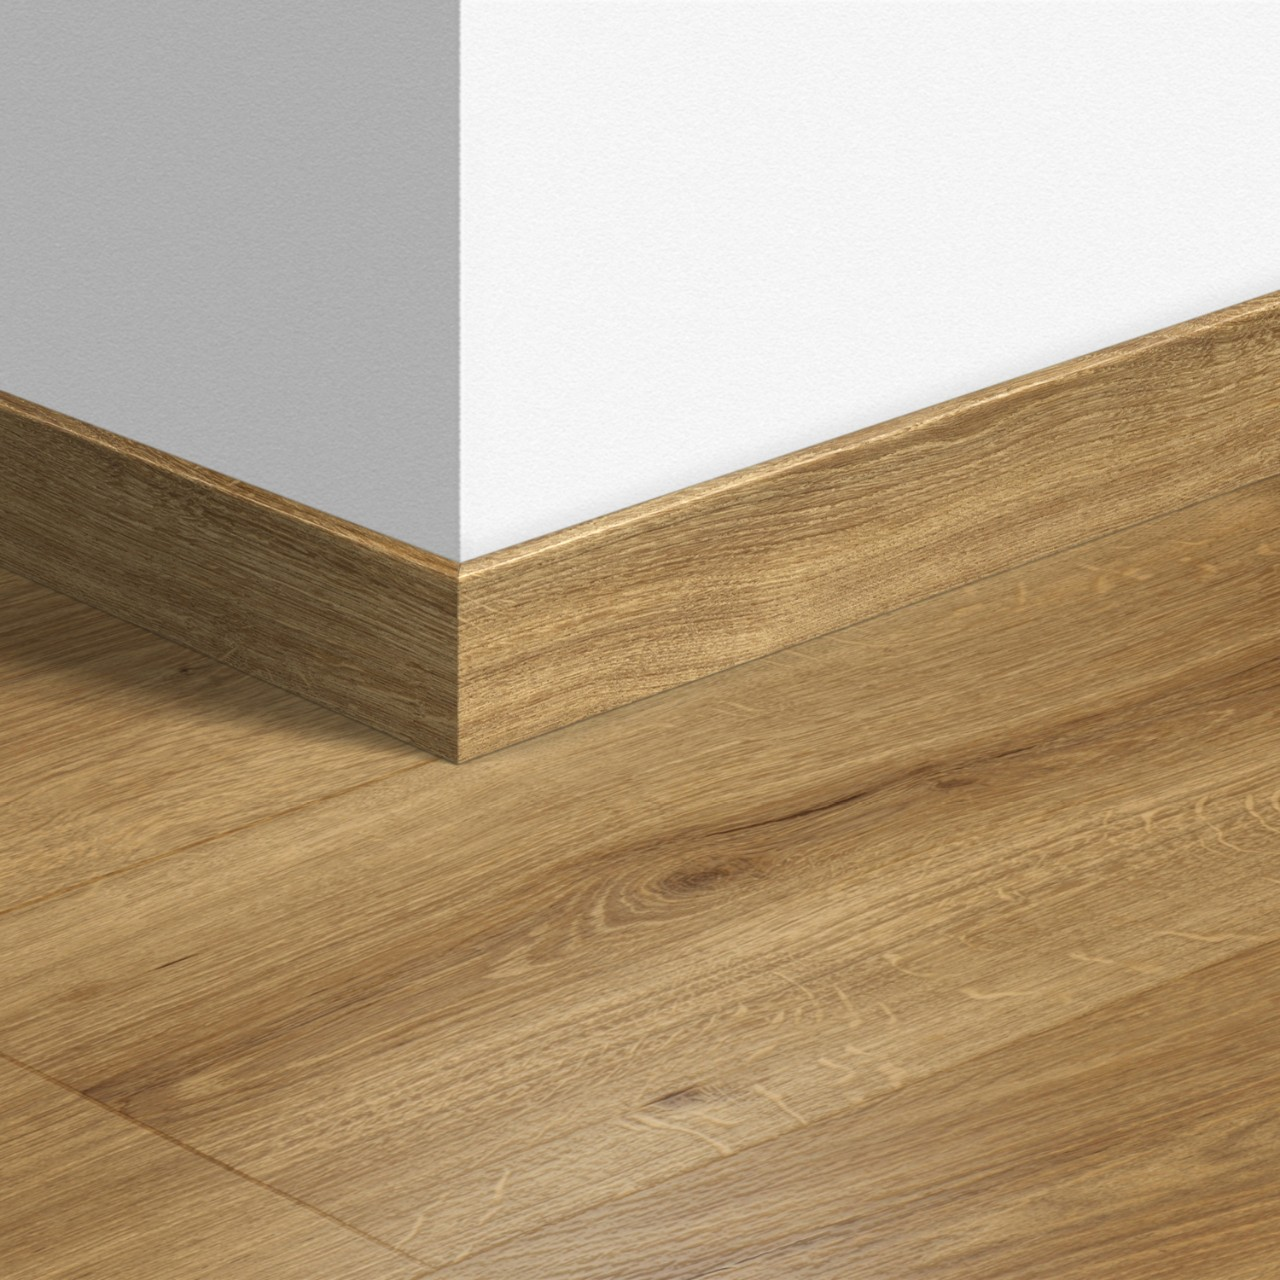 QSSK Laminate Accessories Desert Oak Warm Natural QSSK03551